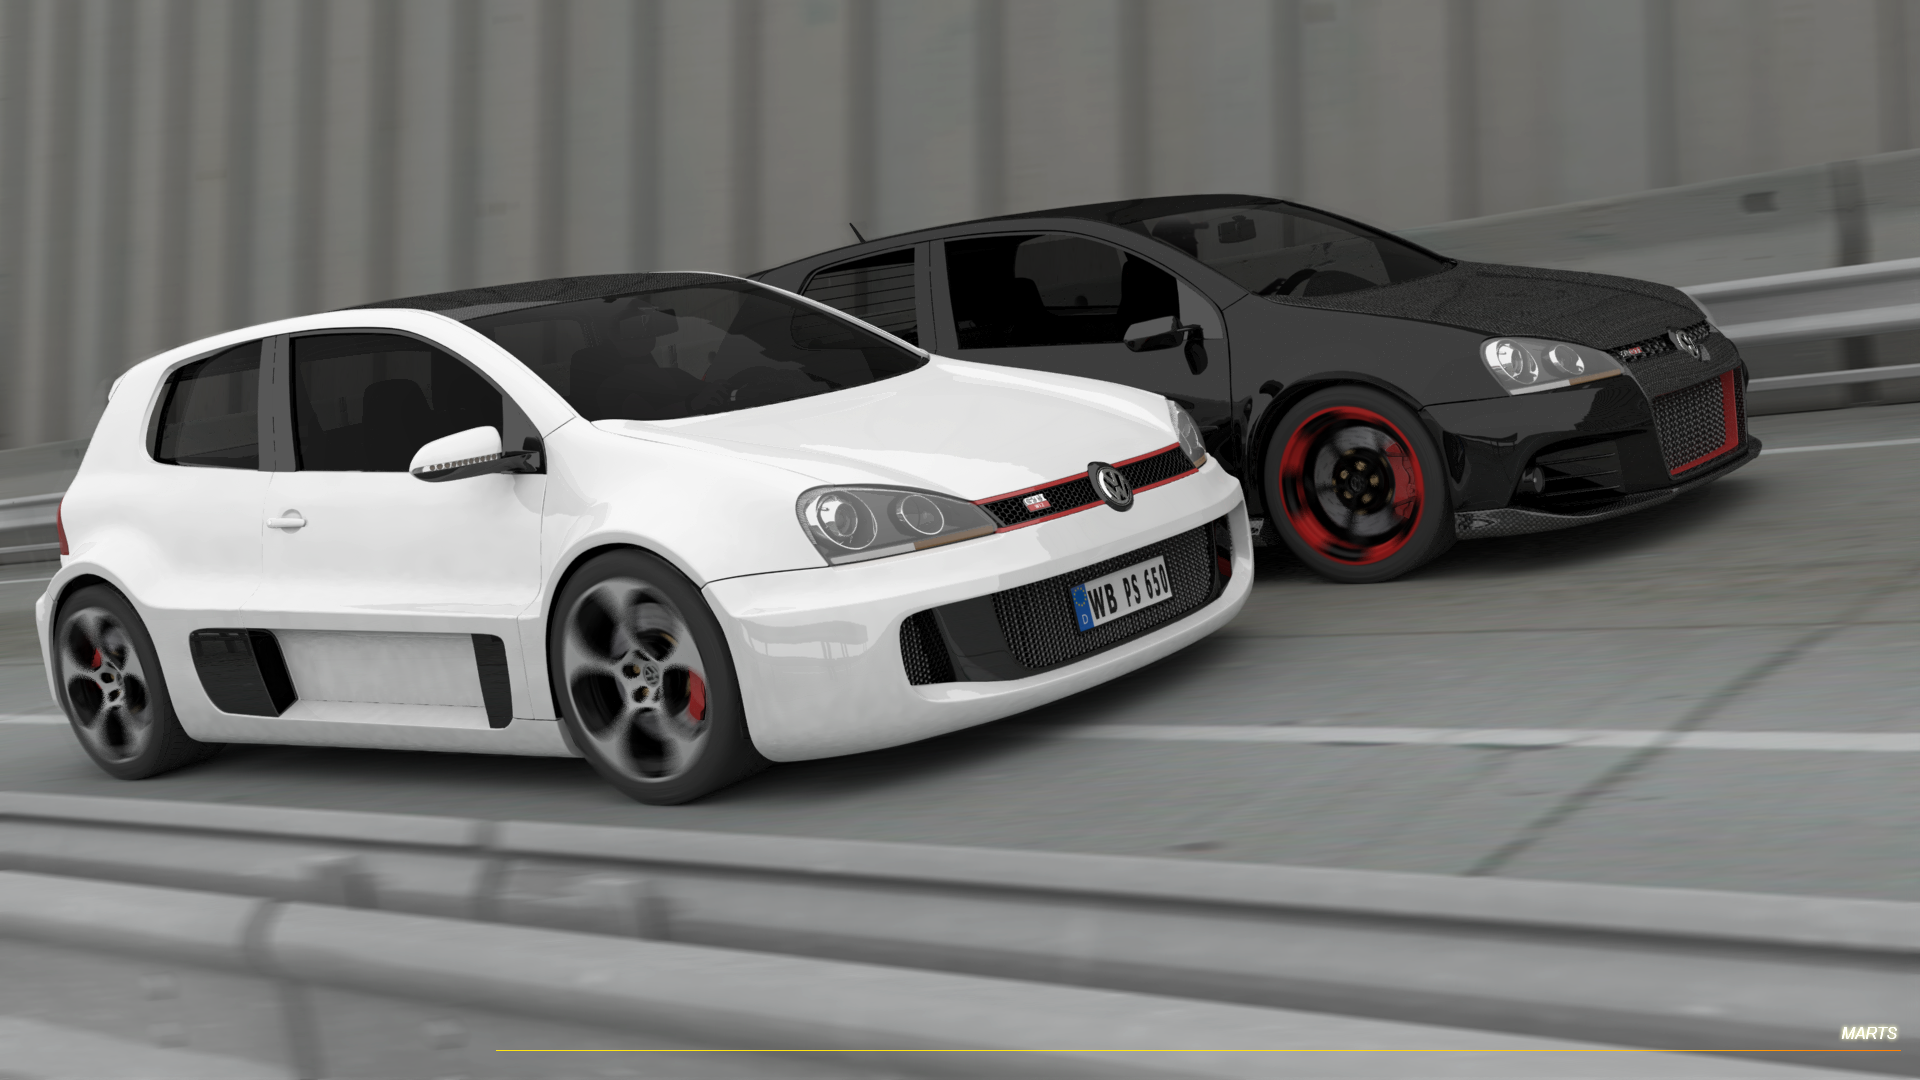 vw golf gti w12 two of the best colors car things. Black Bedroom Furniture Sets. Home Design Ideas